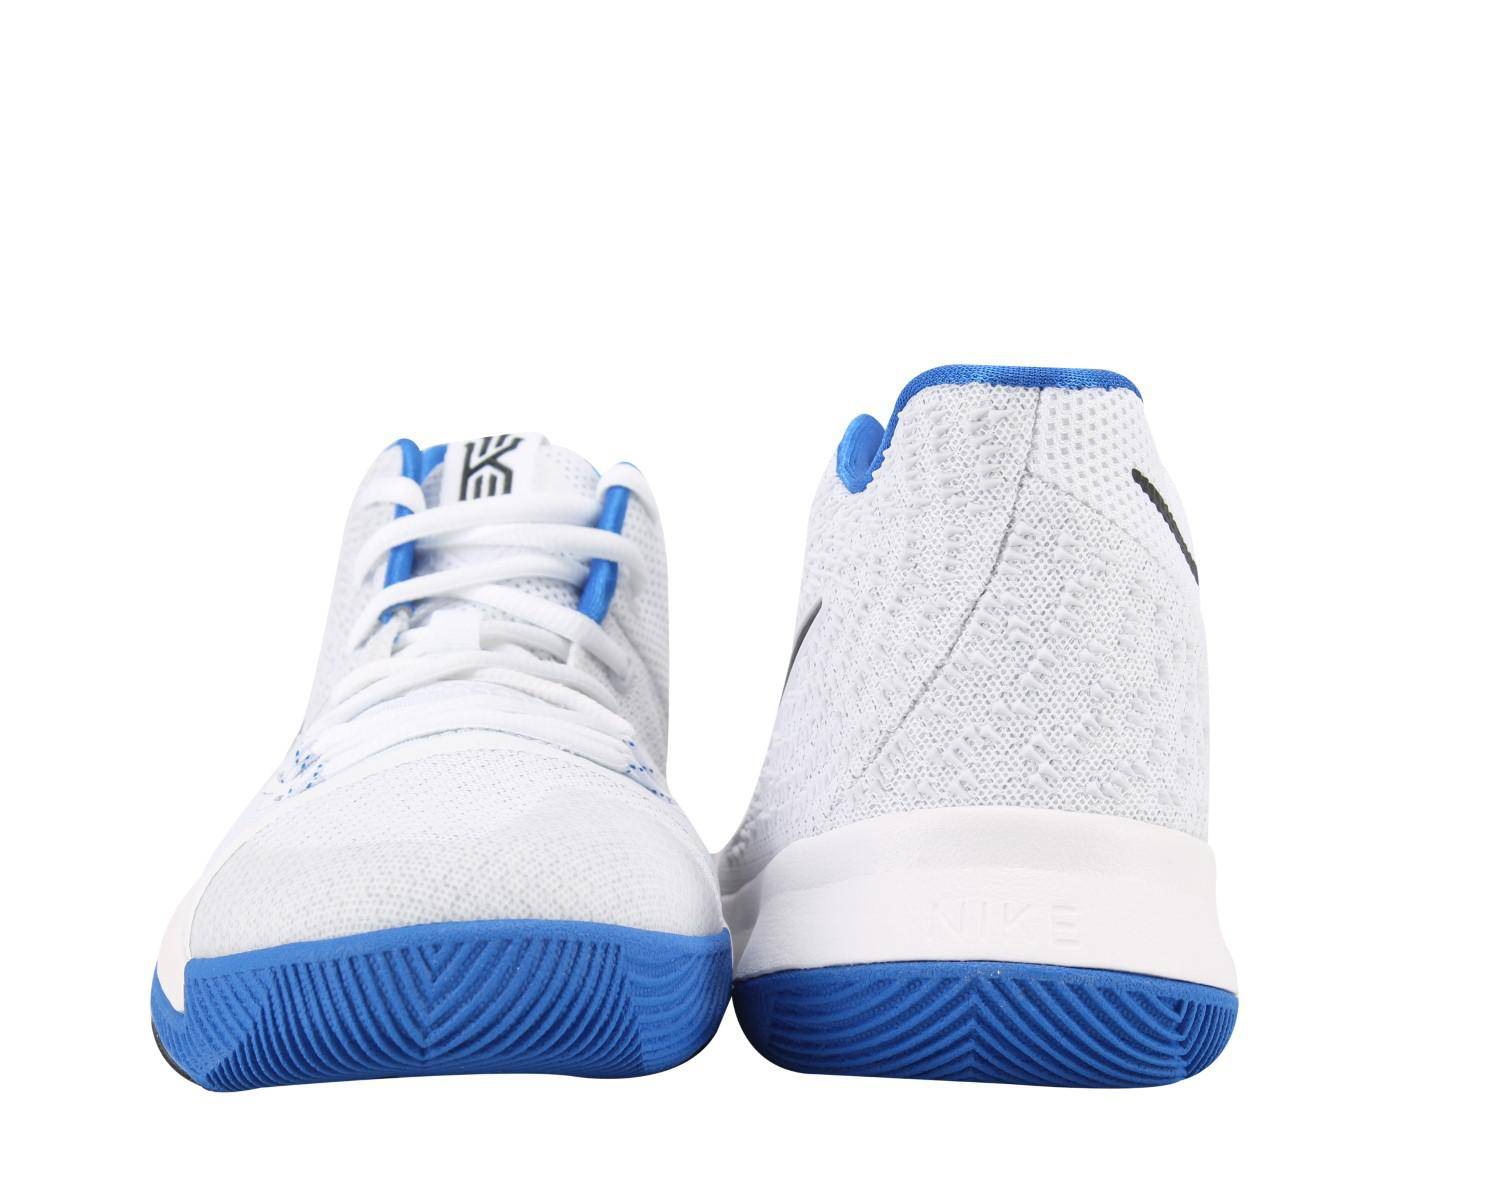 Lyst - Nike Kyrie 3 (gs) Big Kids Basketball Shoes Size 6.5 in Blue ... 2e1300be7